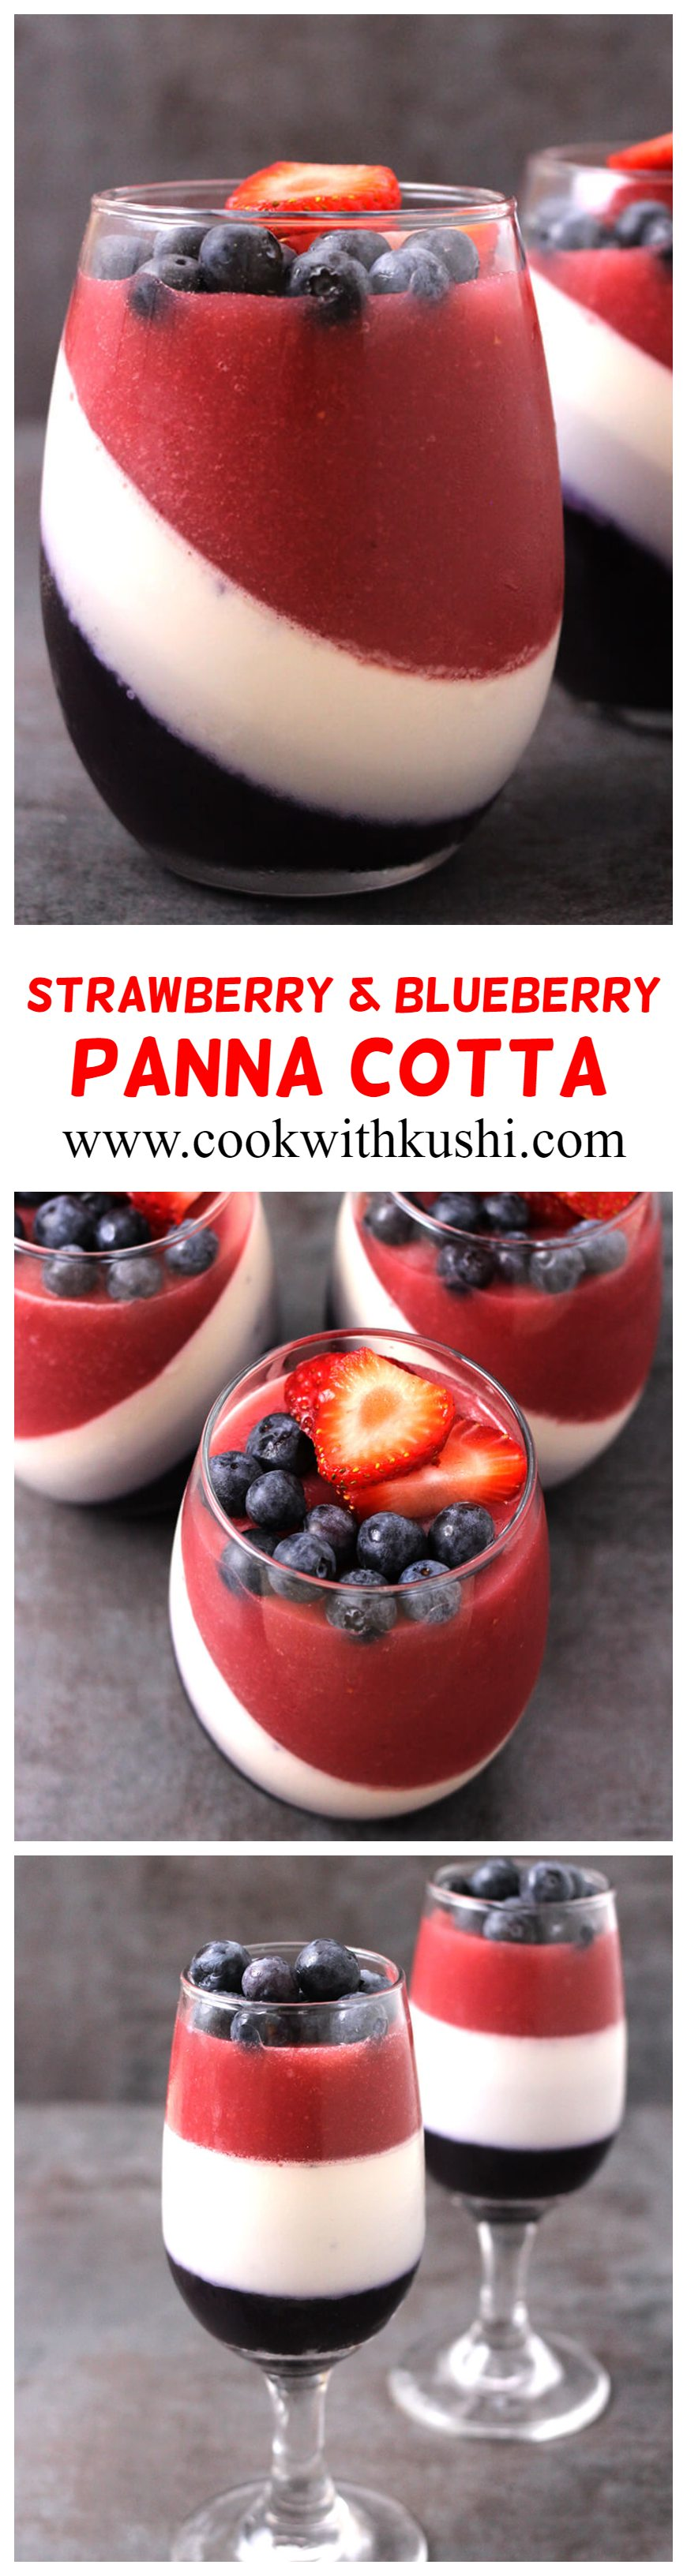 Strawberry and Blueberry Panna Cotta is a 3 layered fancy Italian no bake dessert with interesting flavors in each layer. It's sweet, creamy and tangy, plus very easy to make and you can prepare it in advance. Another perfect patriotic treat for the 4th of July. #pannacotta #italiandessert #kidsfriendly #4thofjuly #patriotictreats #patrioticdessert #nobake #freshberries #strawberries #blueberries